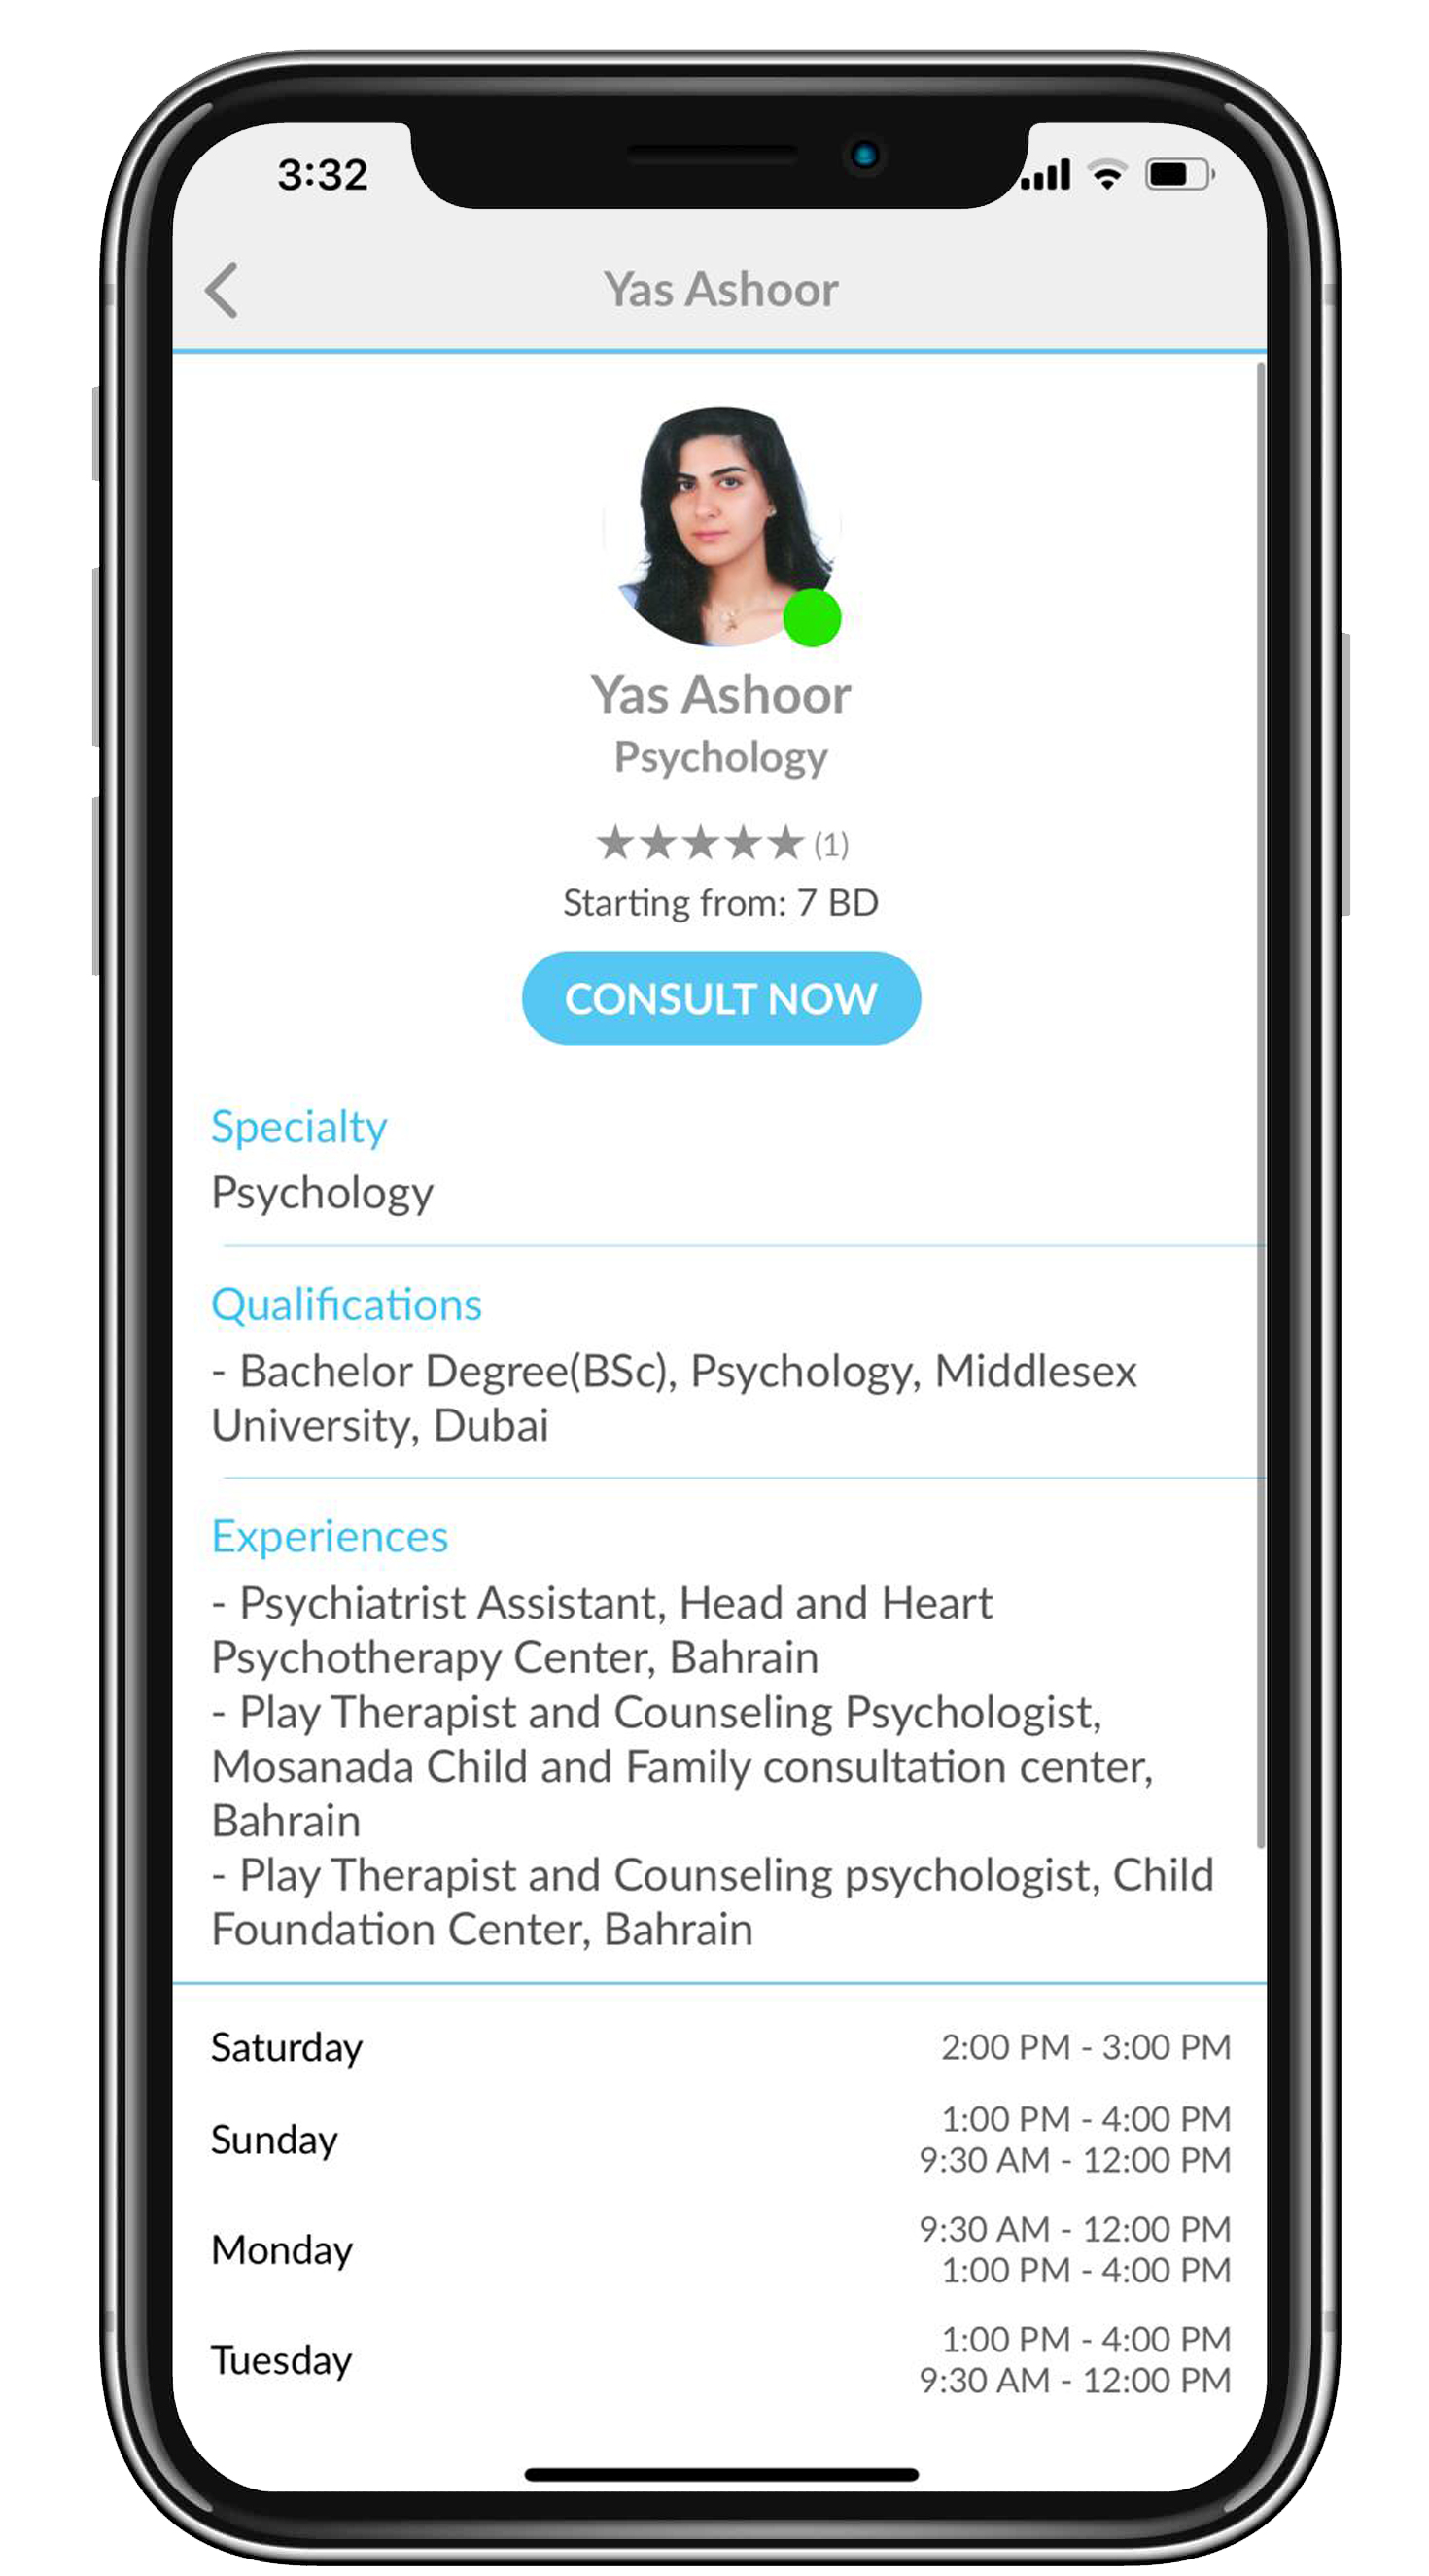 Clicking on a doctor name from the list will prompt the doctor profile with more detailed information